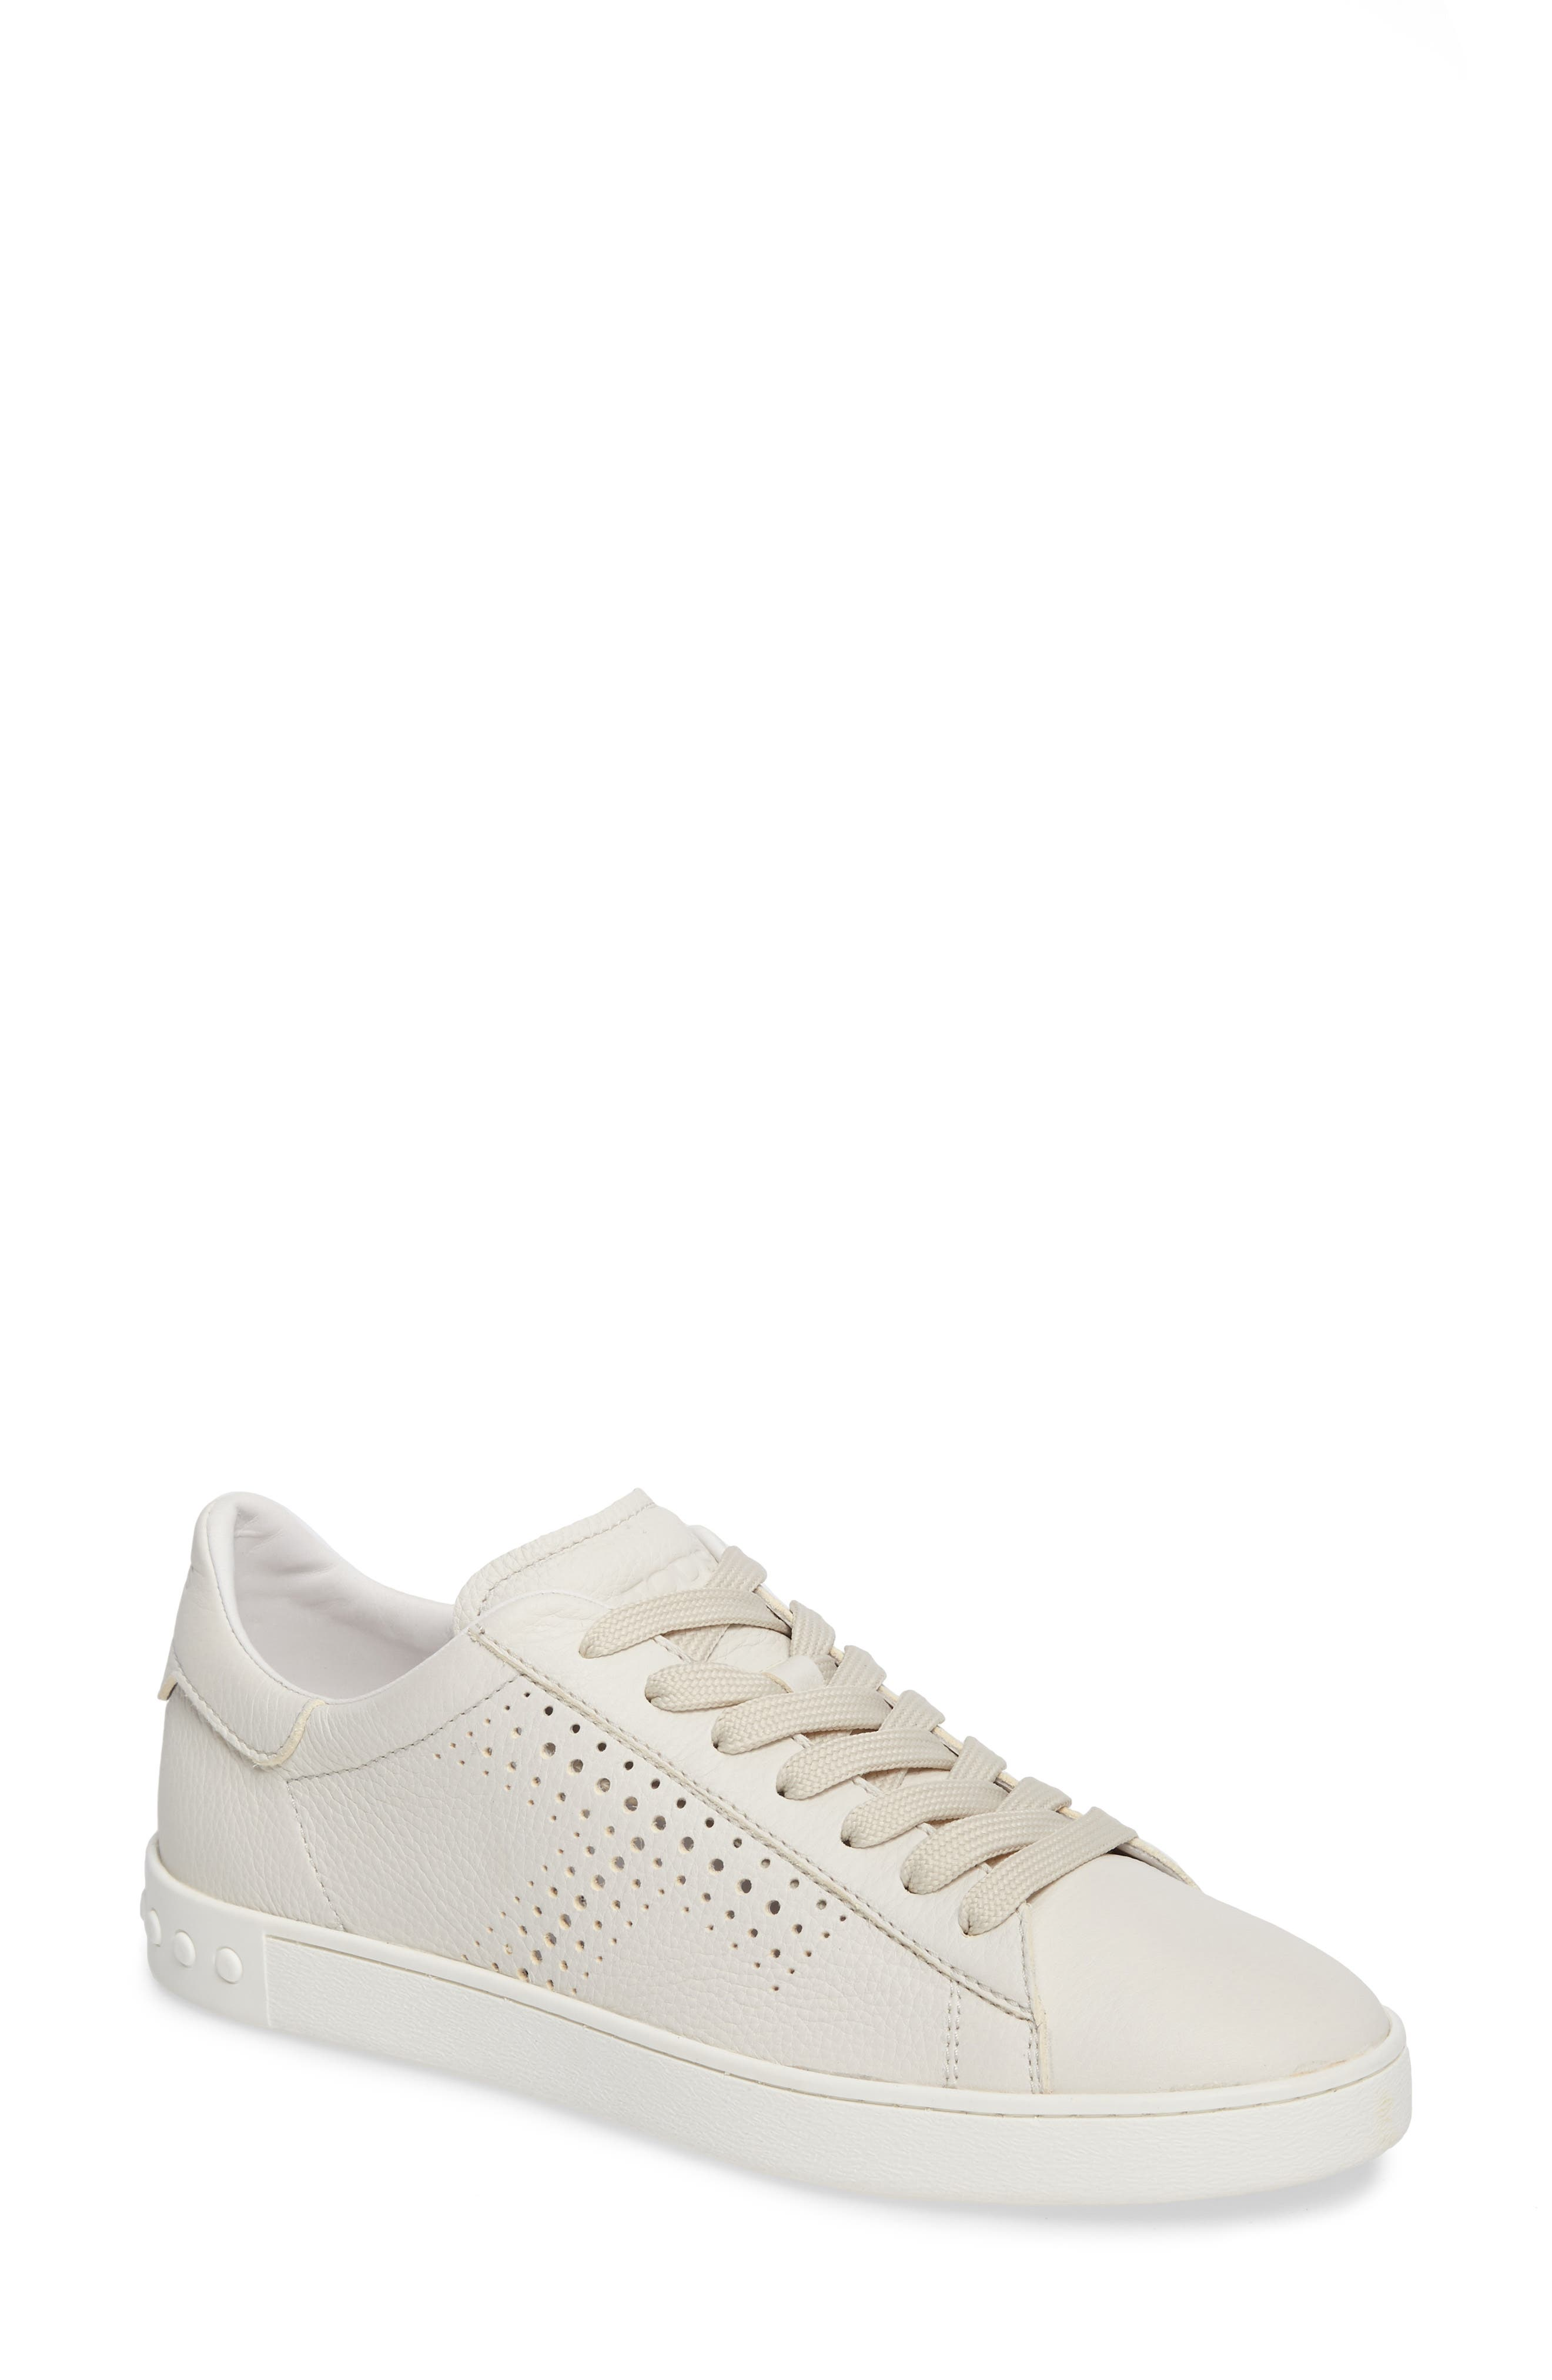 Tods Perforated T Sneaker,                         Main,                         color, 100